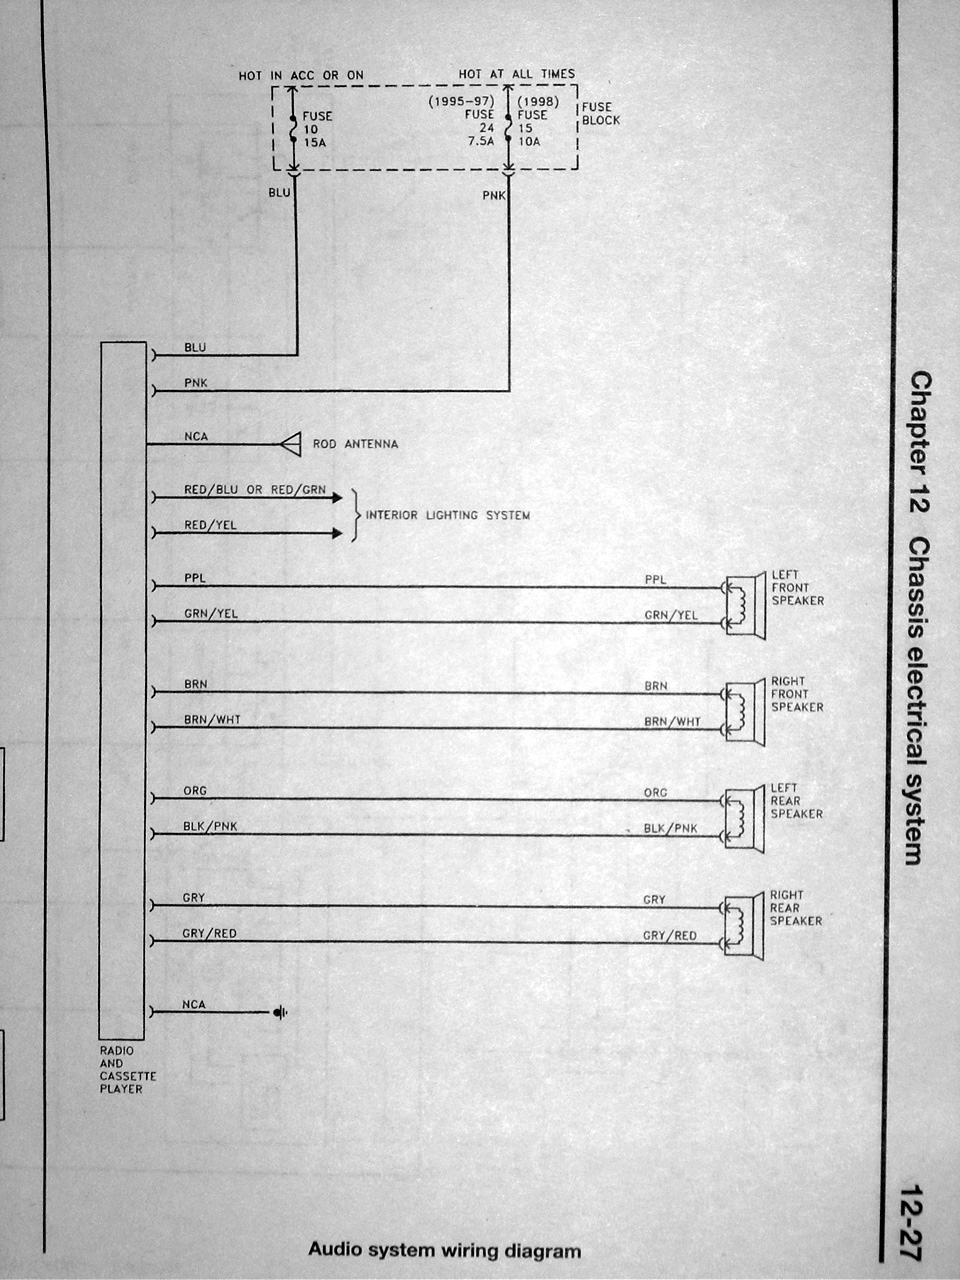 DSC01849 wiring diagram thread *useful info* nissan forum 2001 nissan maxima bose stereo wiring diagram at creativeand.co